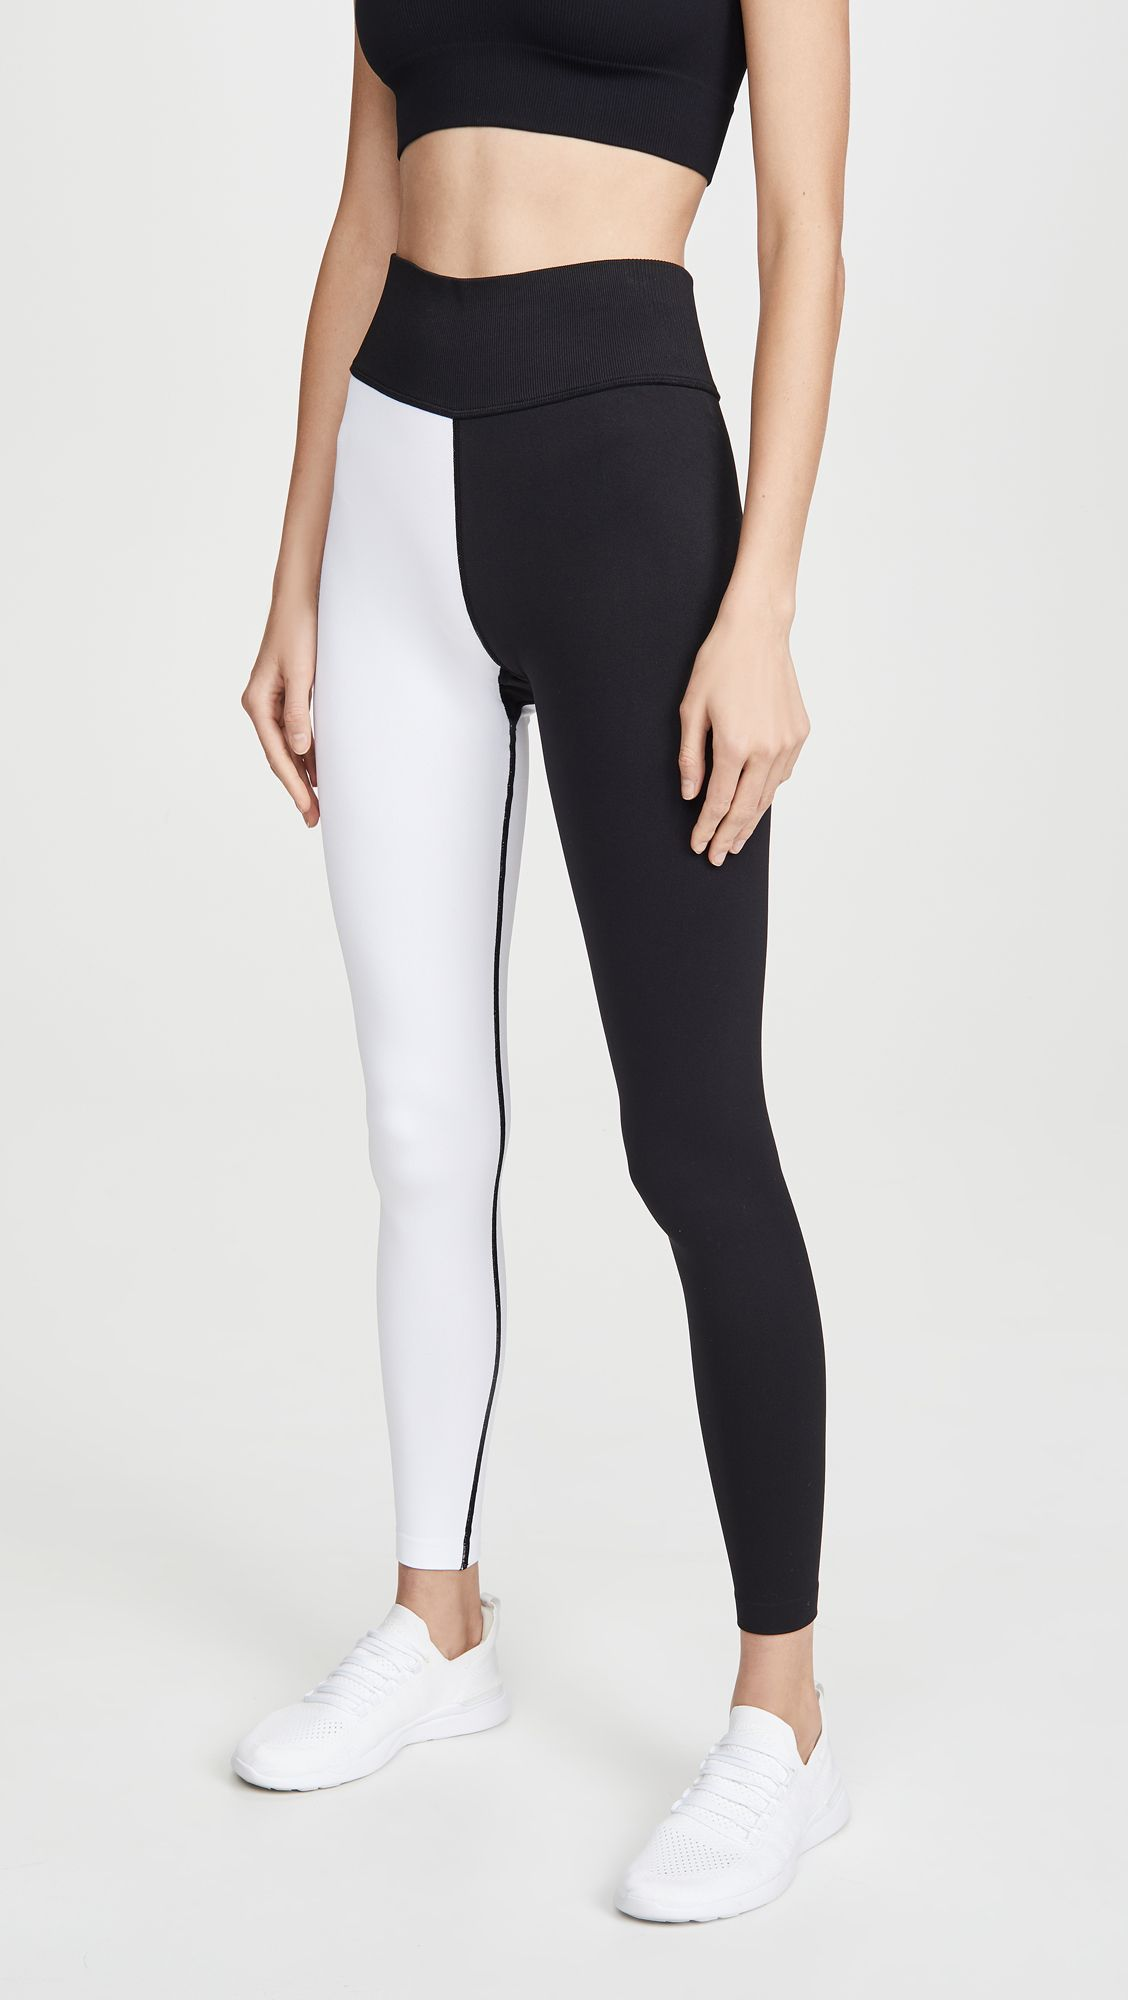 We'd Give Up Basic Black Leggings for These 6 Fresh Spring Trends 18